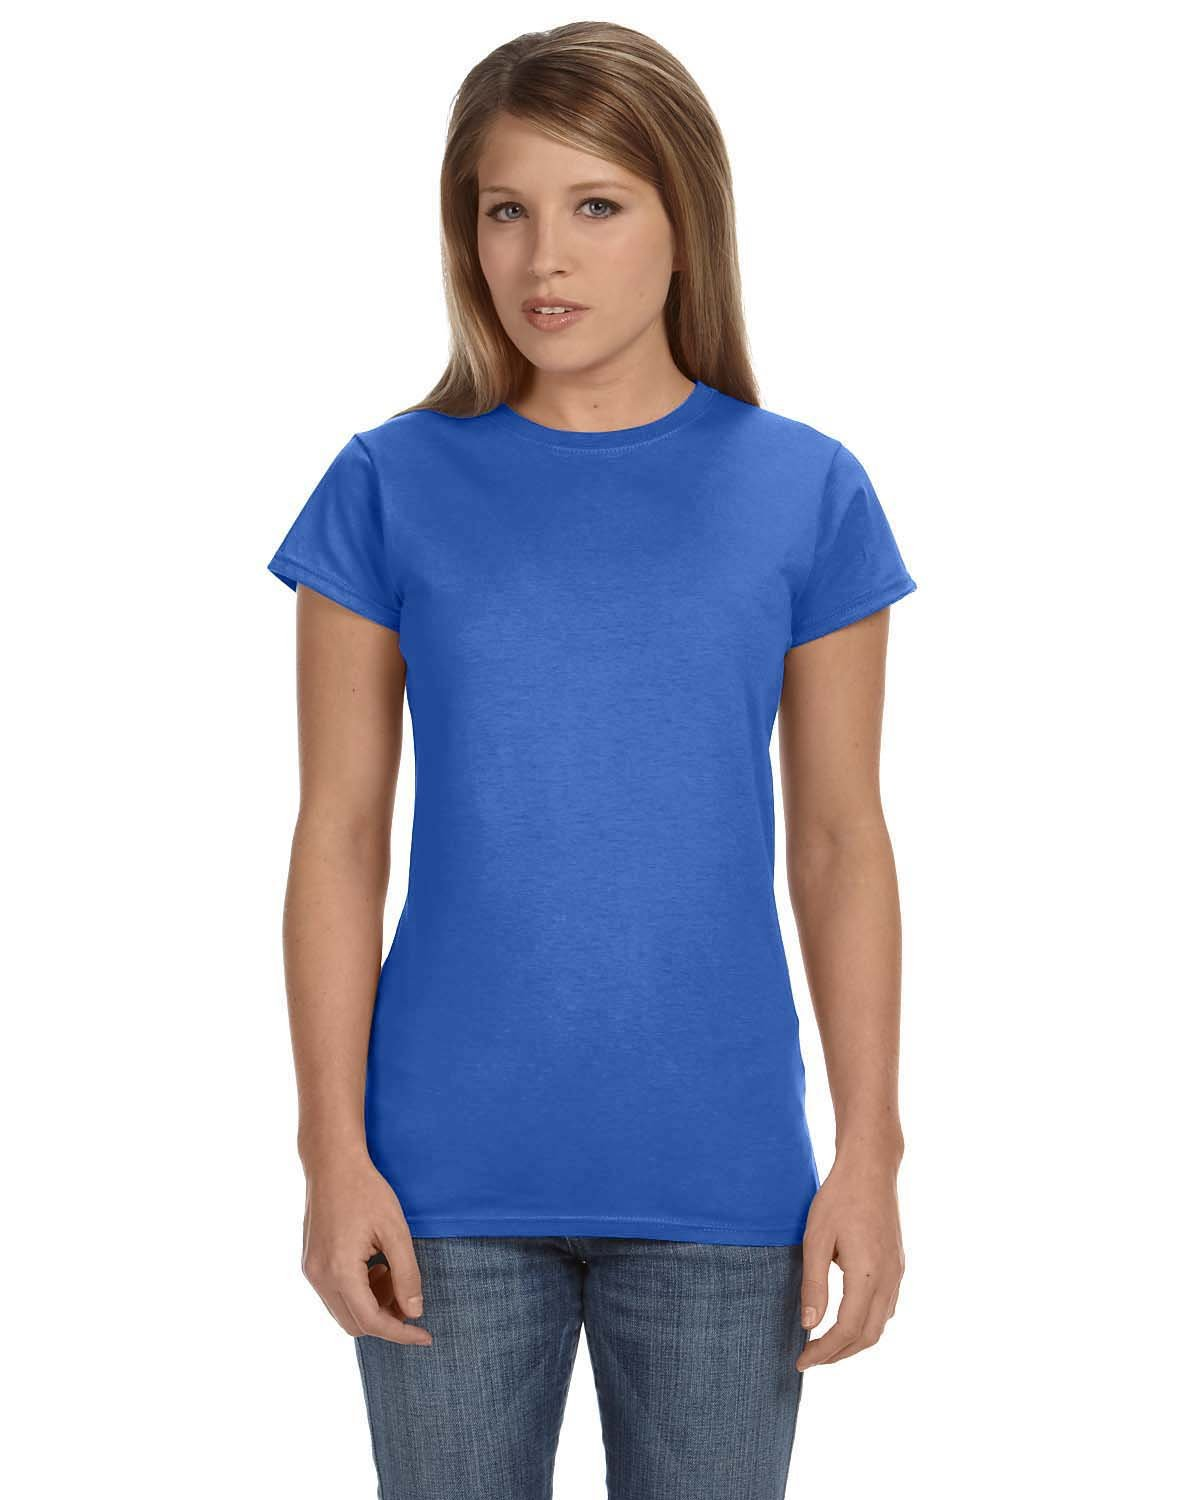 Gildan Ladies' Softstyle® 4.5 oz Fitted T-Shirt HEATHER ROYAL